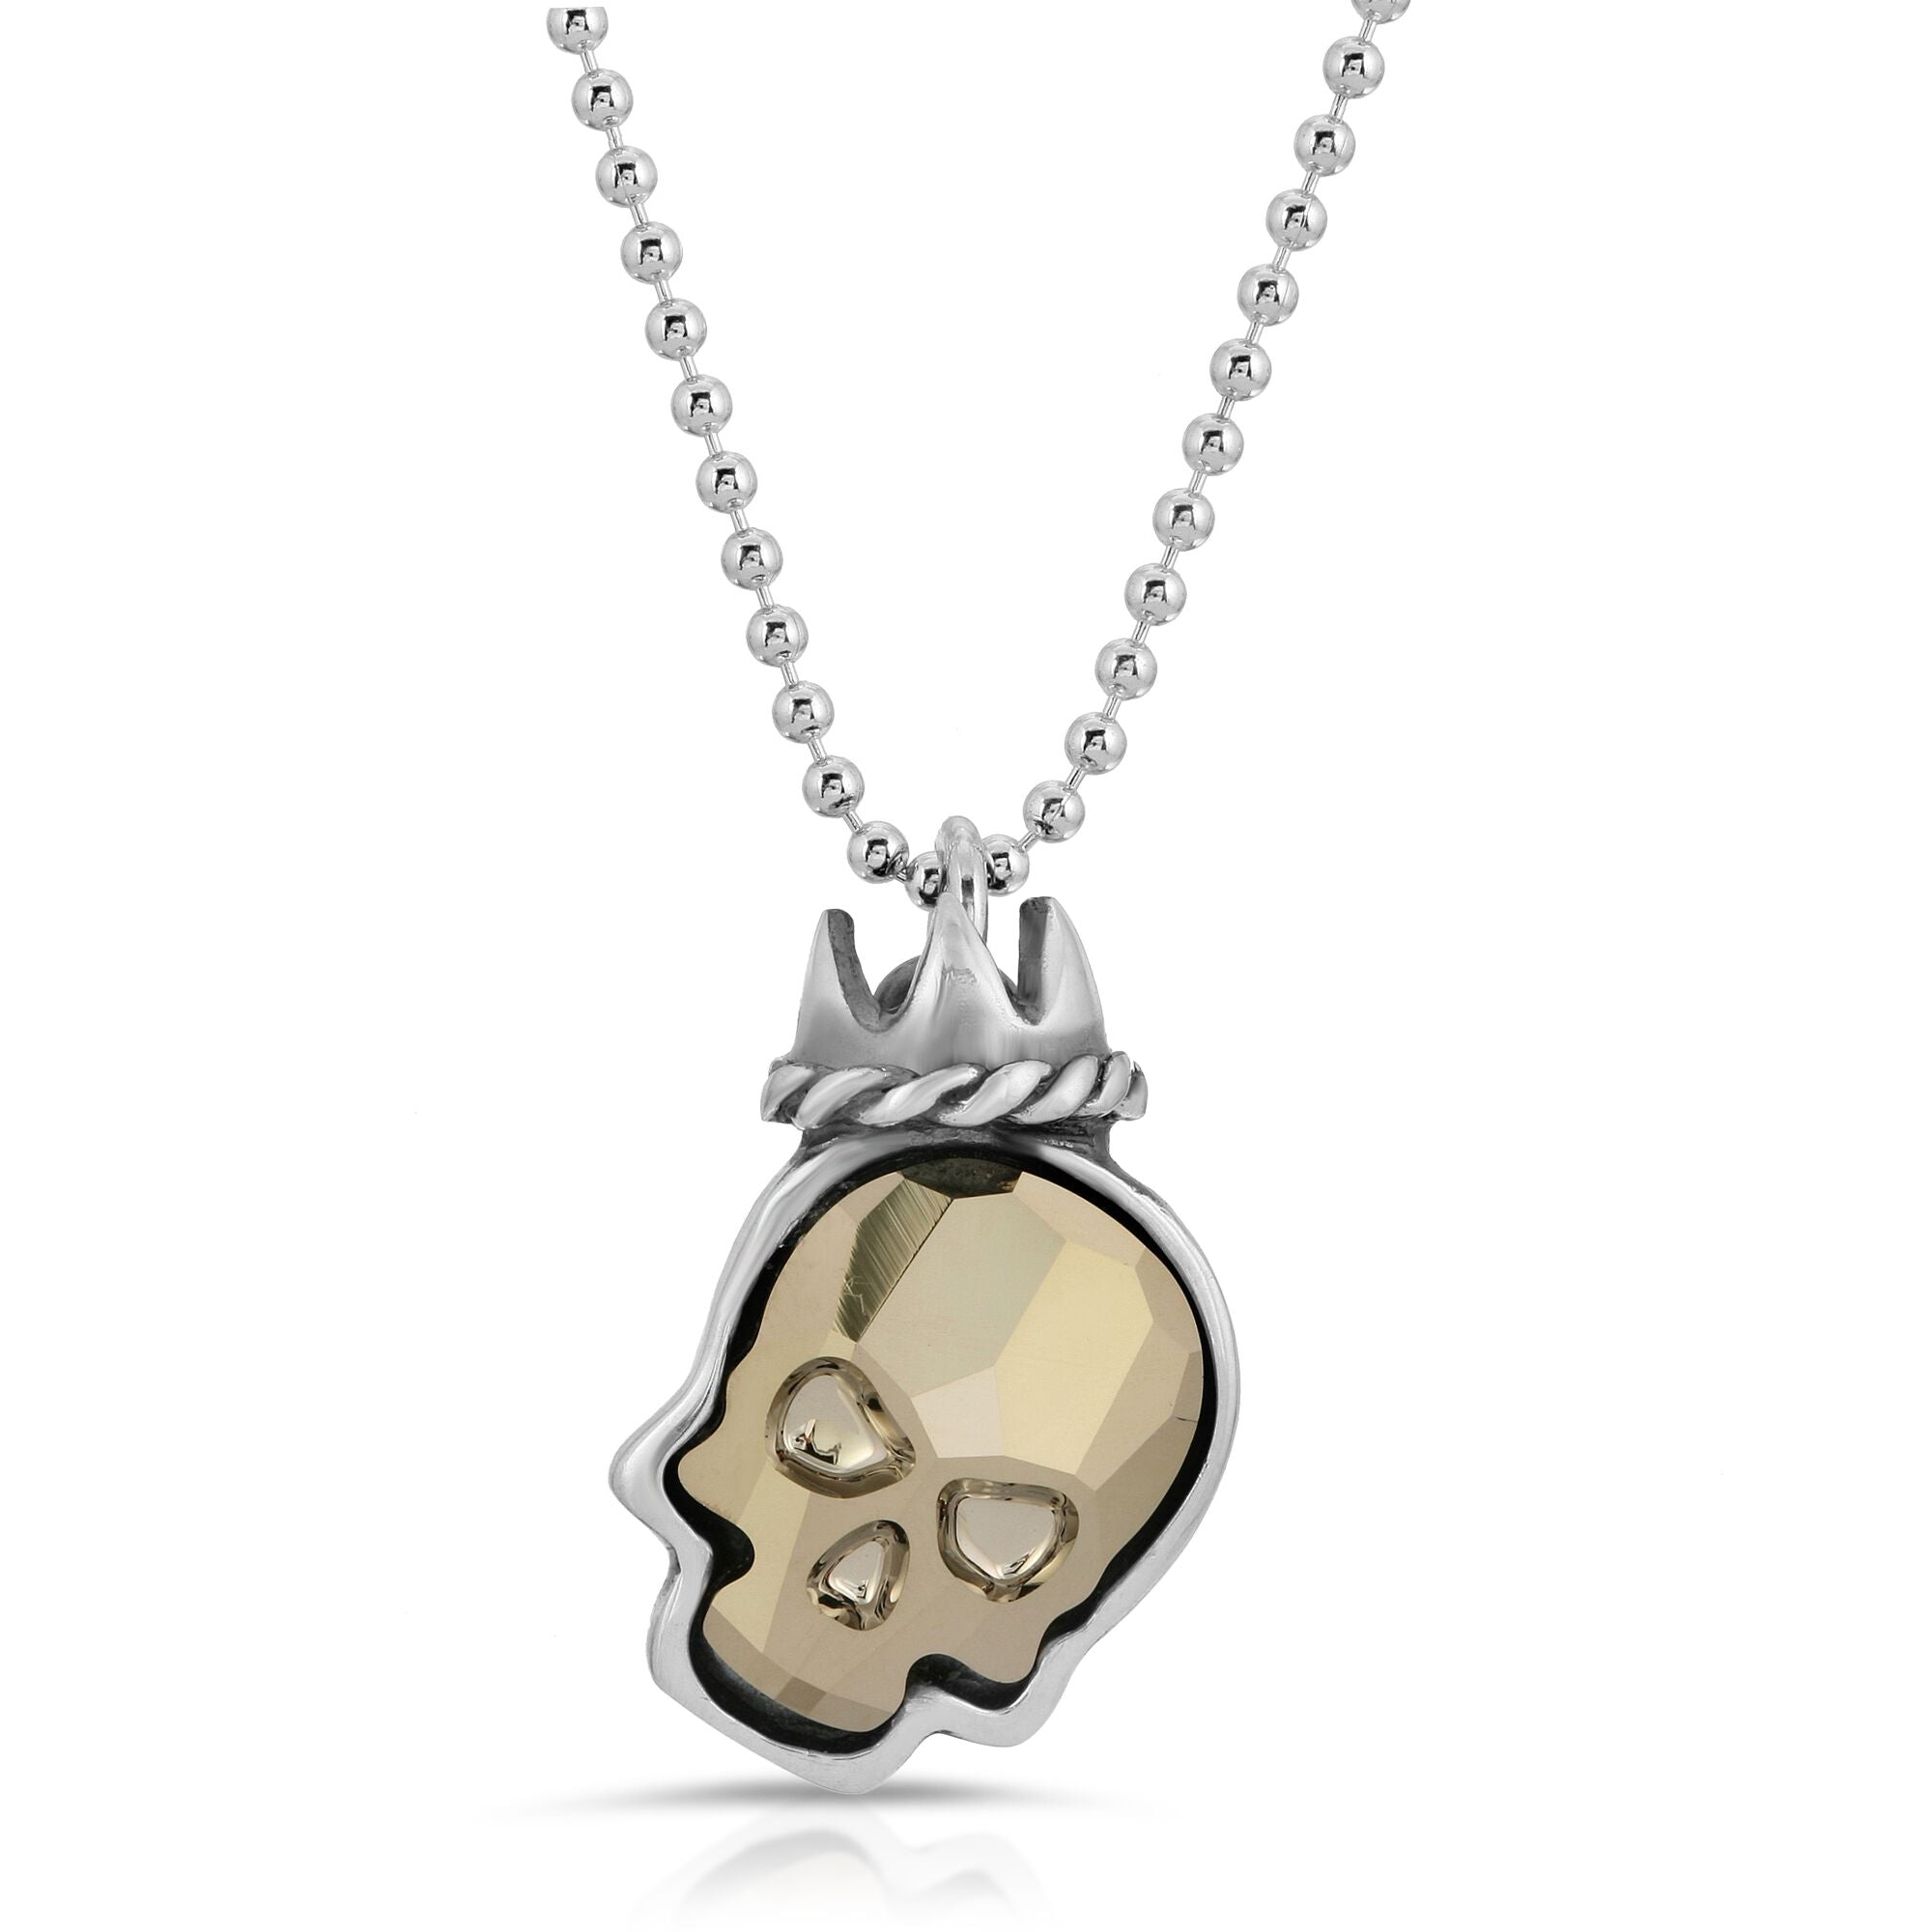 The W brothers Swarovski Skull Necklace in metallic gold with a gorgeous silver crown crafted from premium Grade A Sterling Silver. Perfect jewelry accessory necklace for fashionable statement women. Available at www.thewbros.com